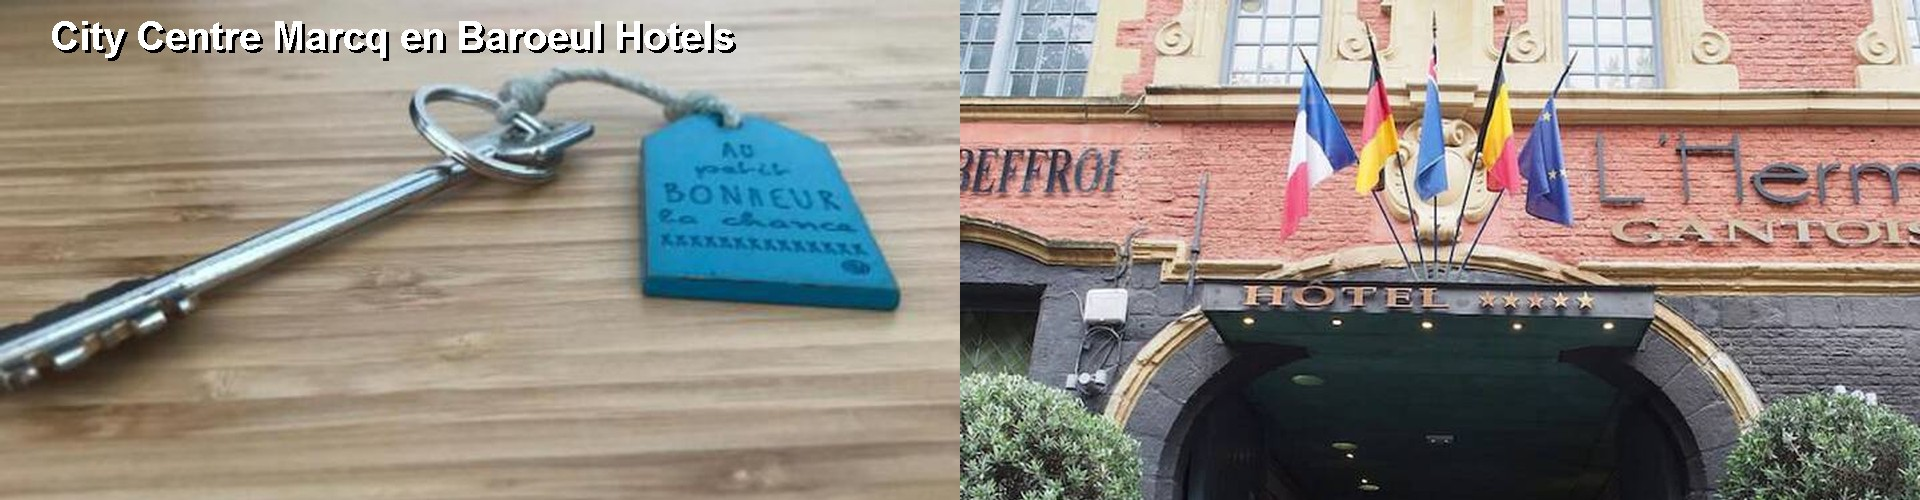 5 Best Hotels near City Centre Marcq en Baroeul